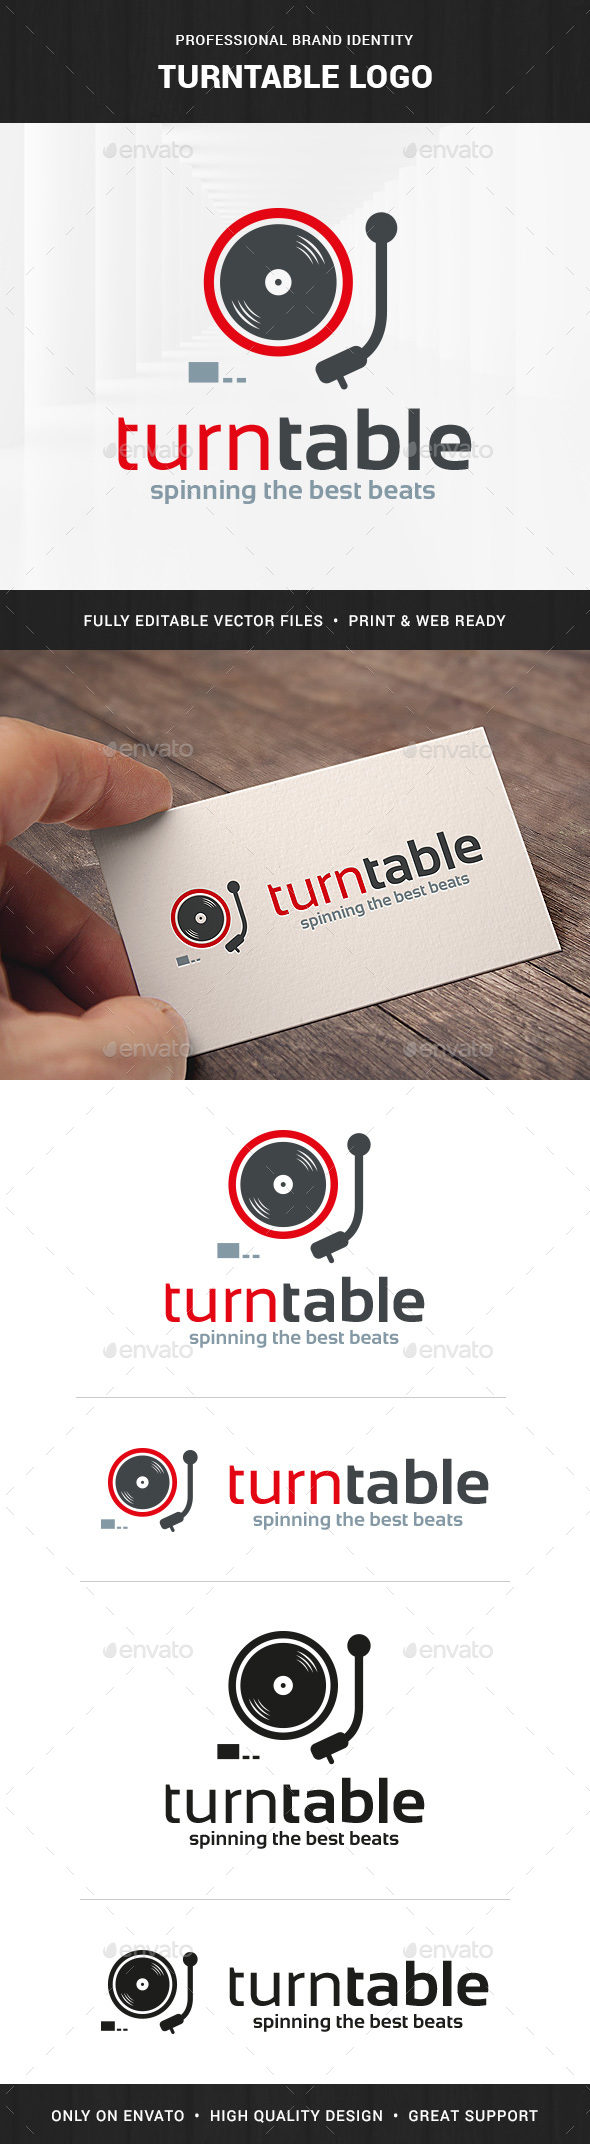 Turntable Logo Template - Objects Logo Templates